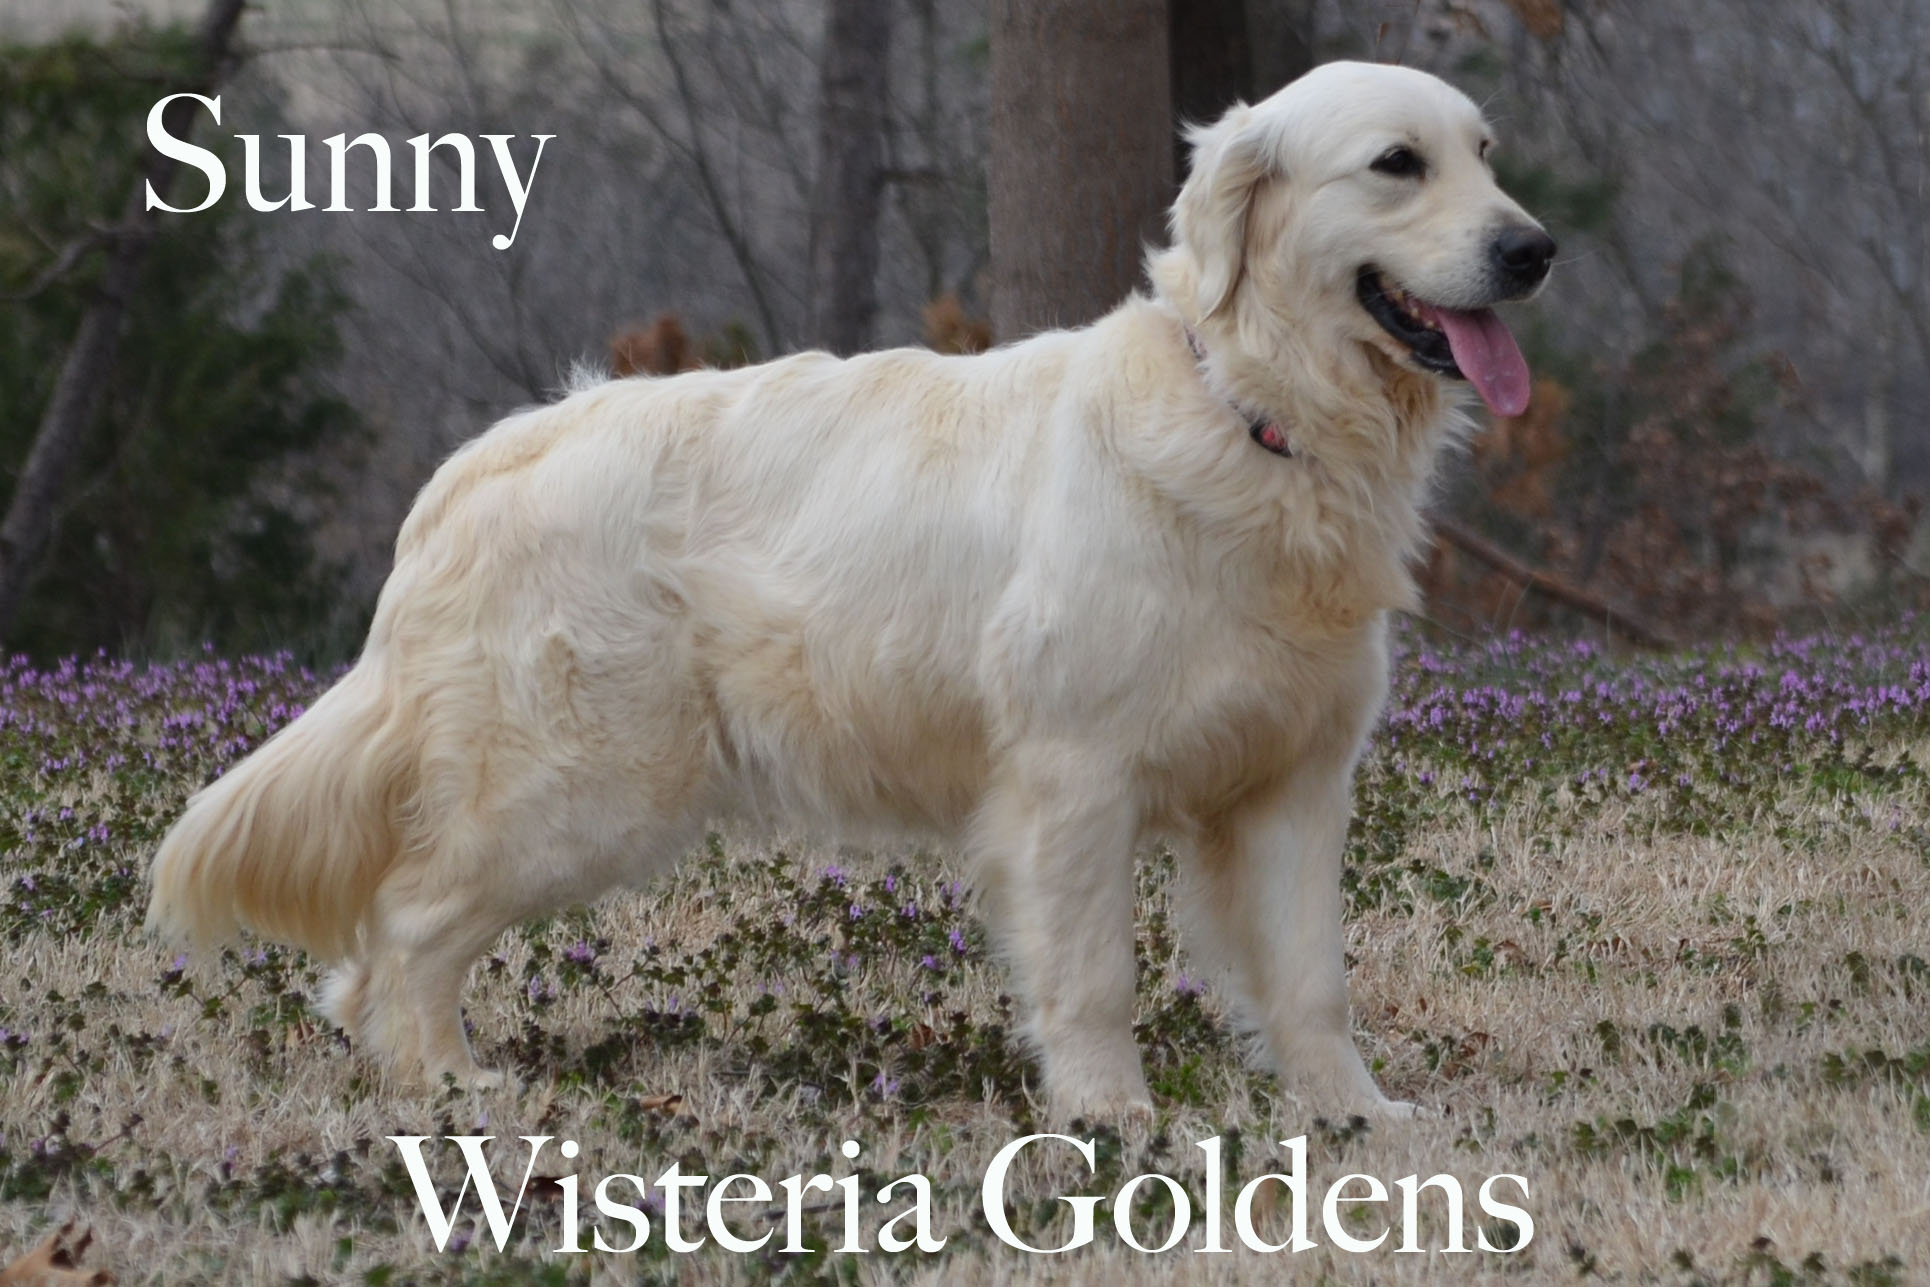 Sunny_0026-full-english-creme-golden-retriever-wisteria-goldens